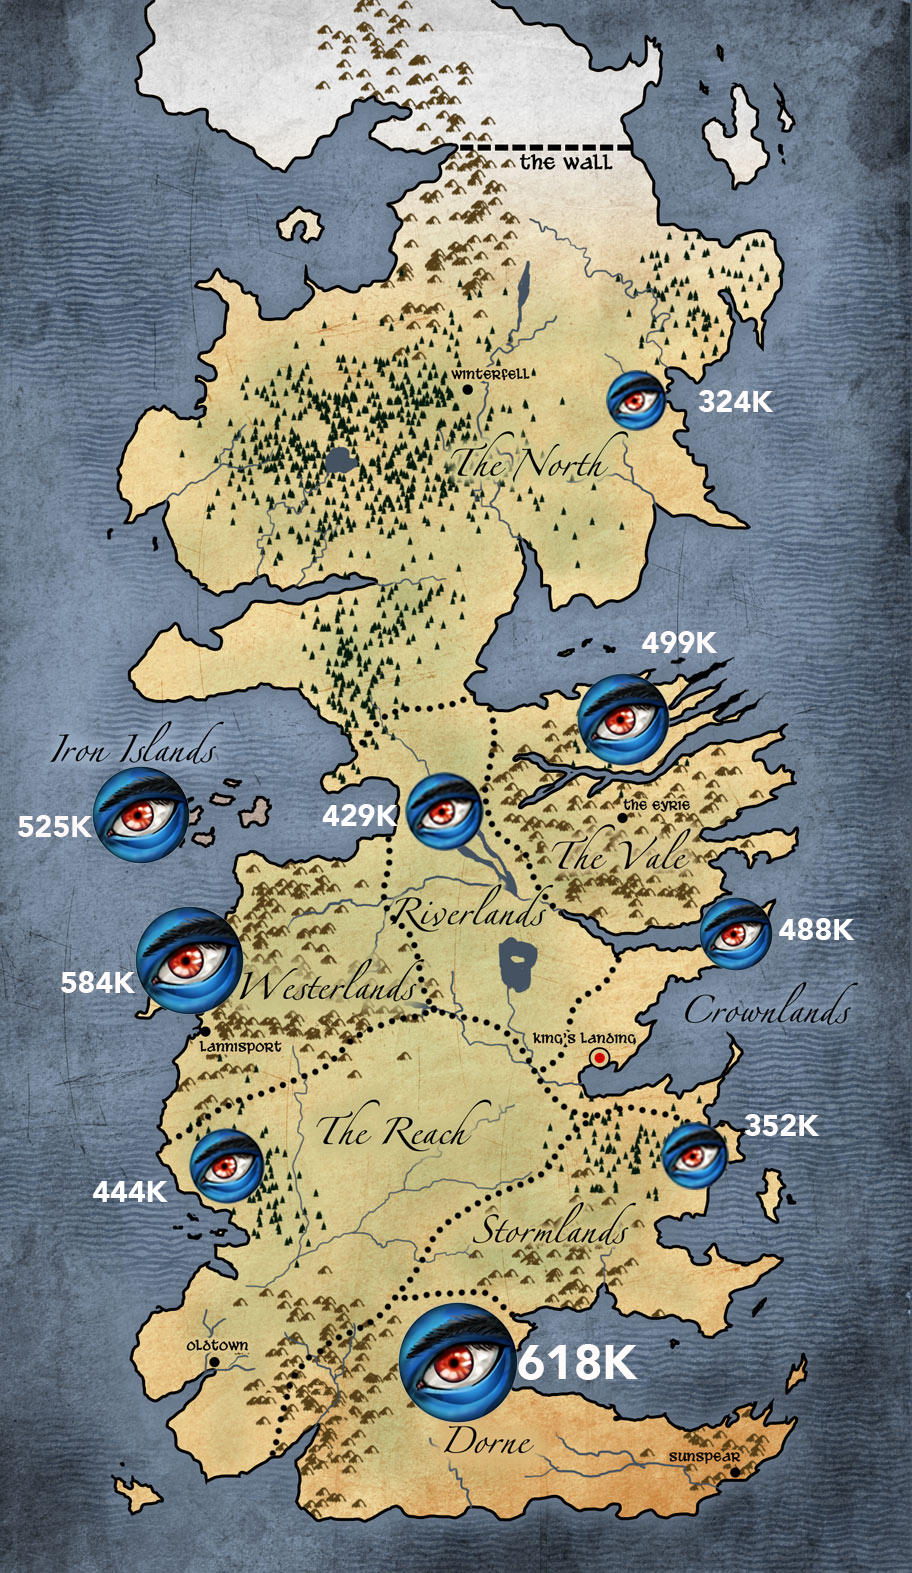 spy_attacks_westeros.jpg